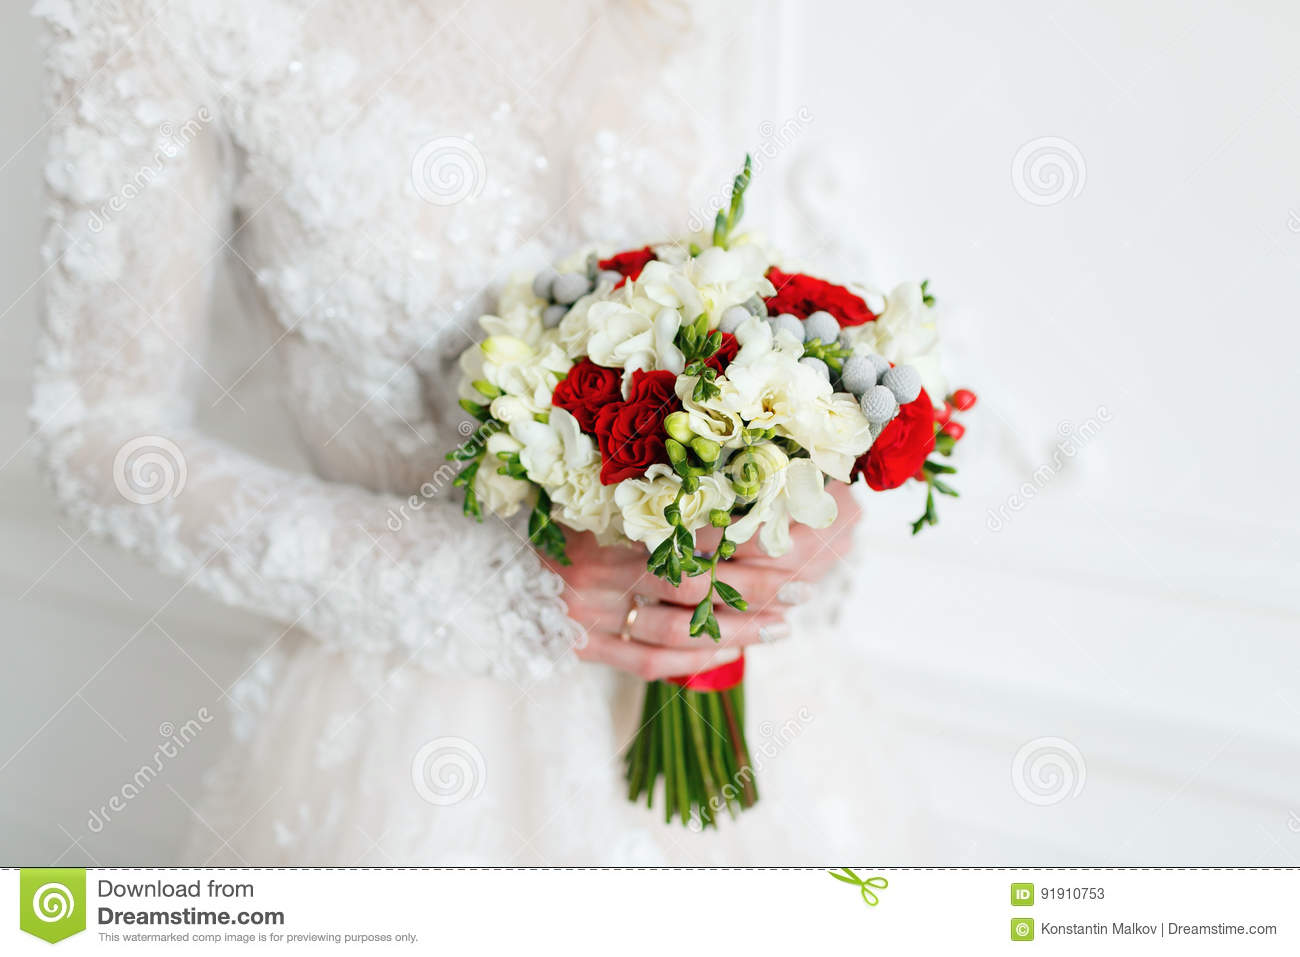 bride holding bridal bouquet close up red and white roses freesia